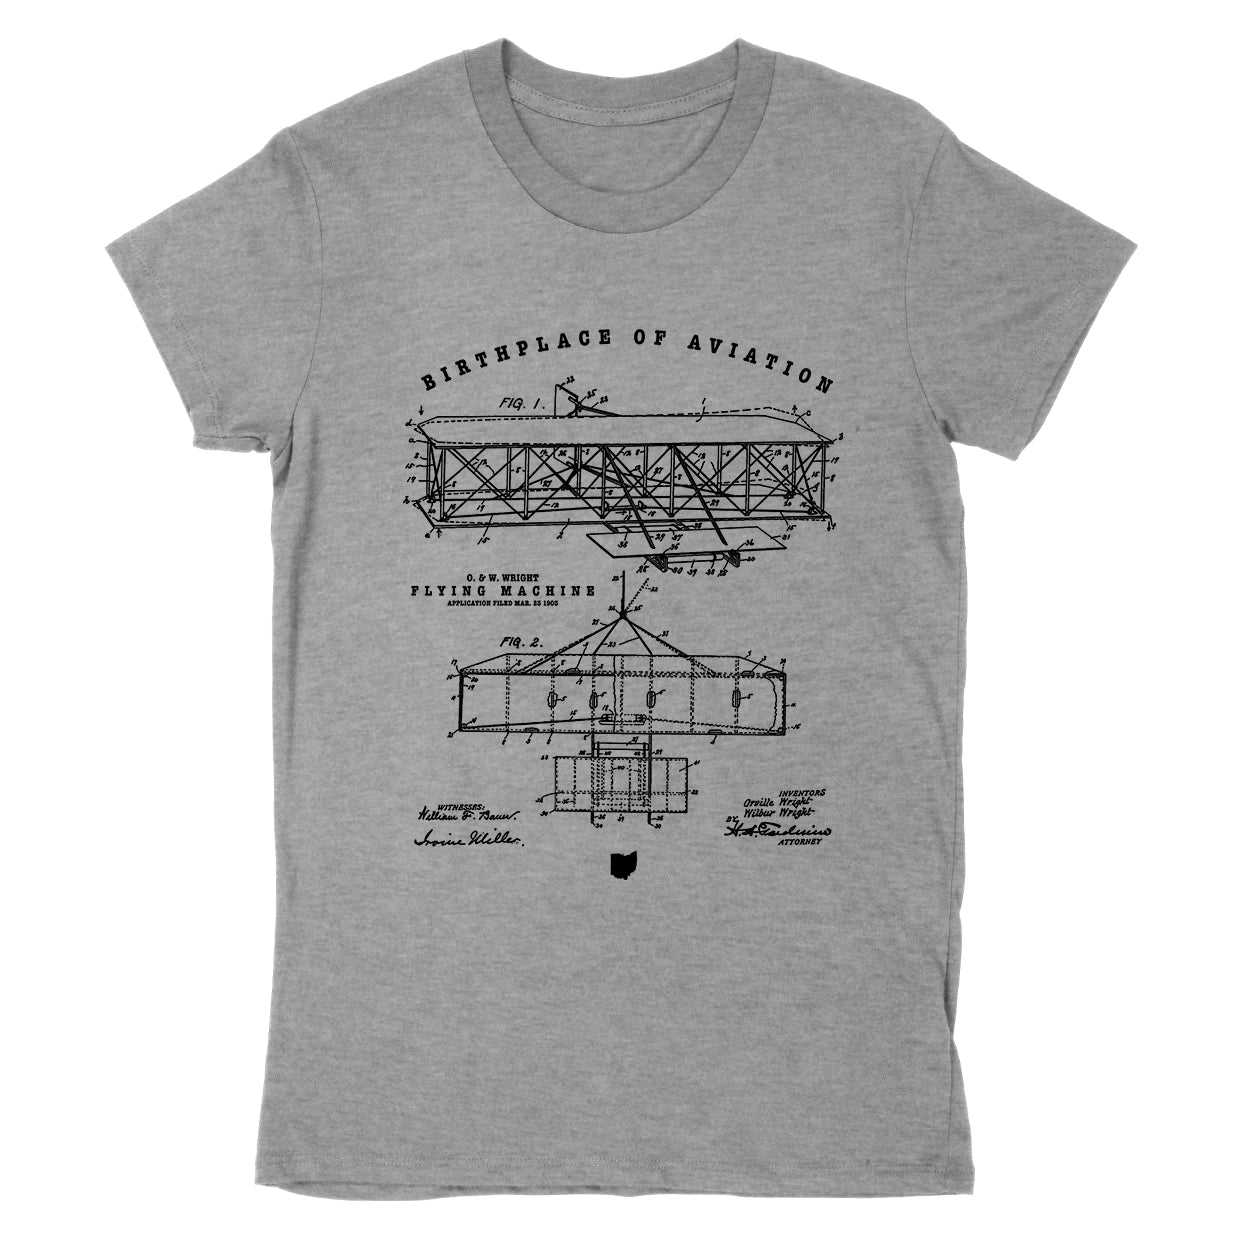 Wright Birthplace Of Aviation Women's T-Shirt - Clothe Ohio - Soft Ohio Shirts